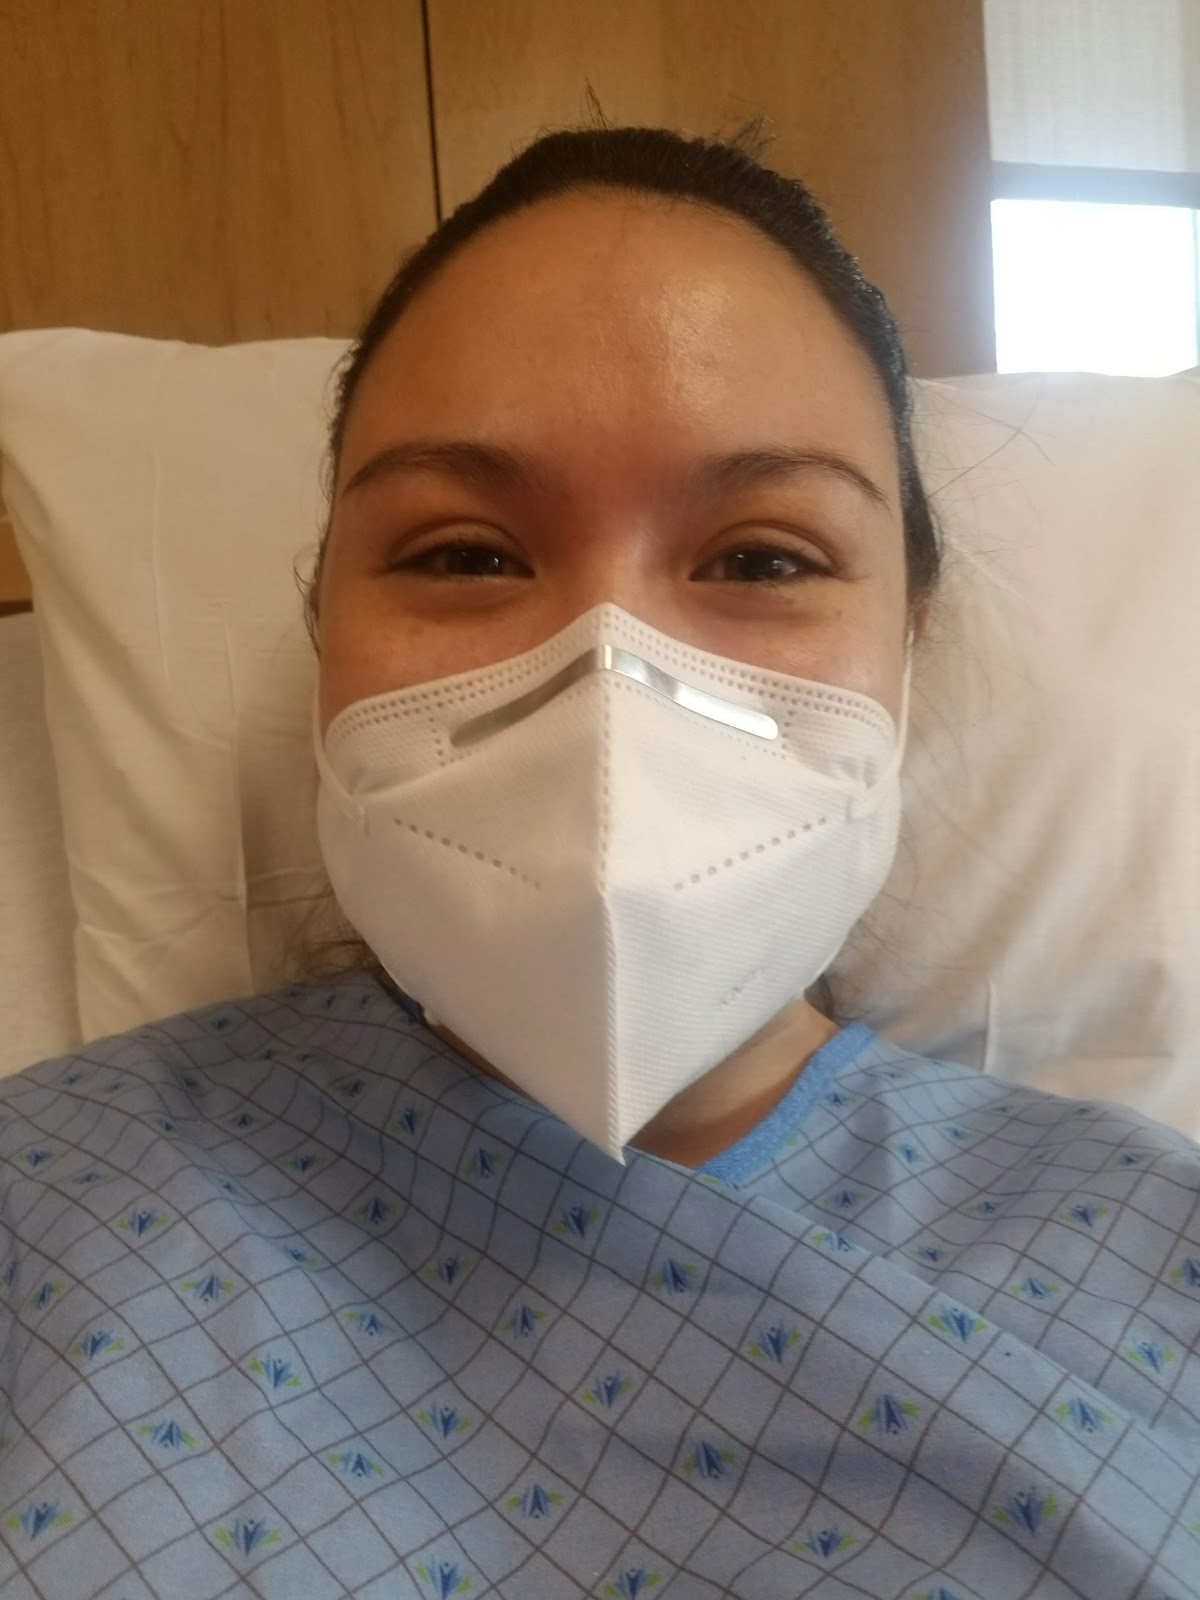 Maile Waite in a mask in the hospital